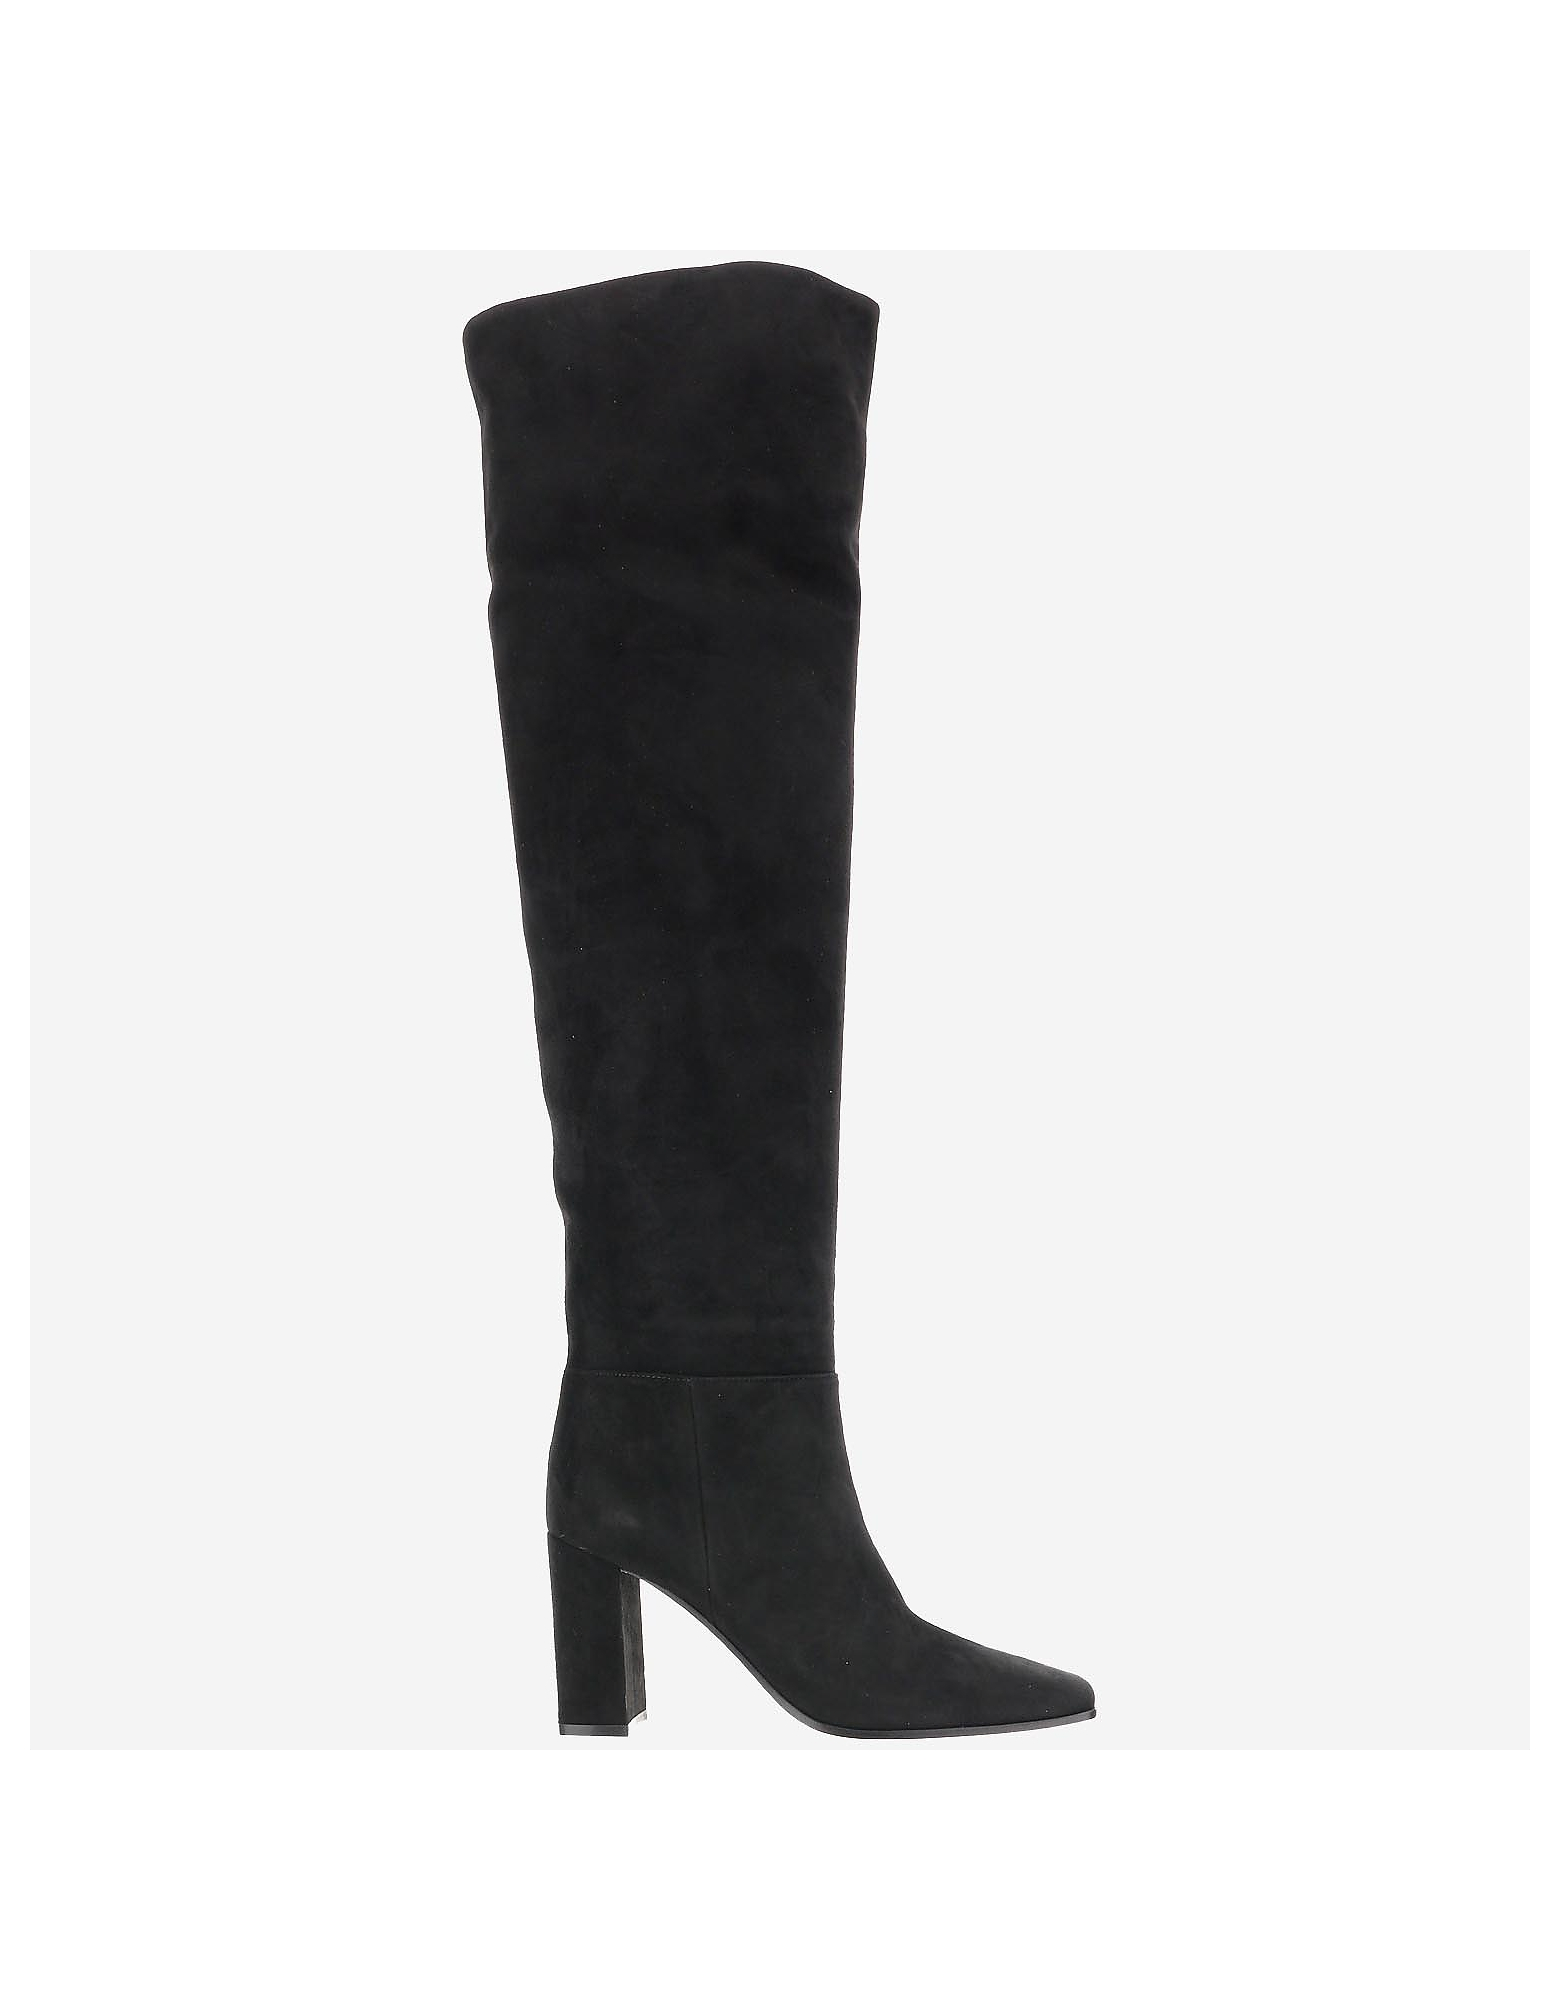 Gianvito Rossi Designer Shoes, Black Suede Over-the-Knee Boots